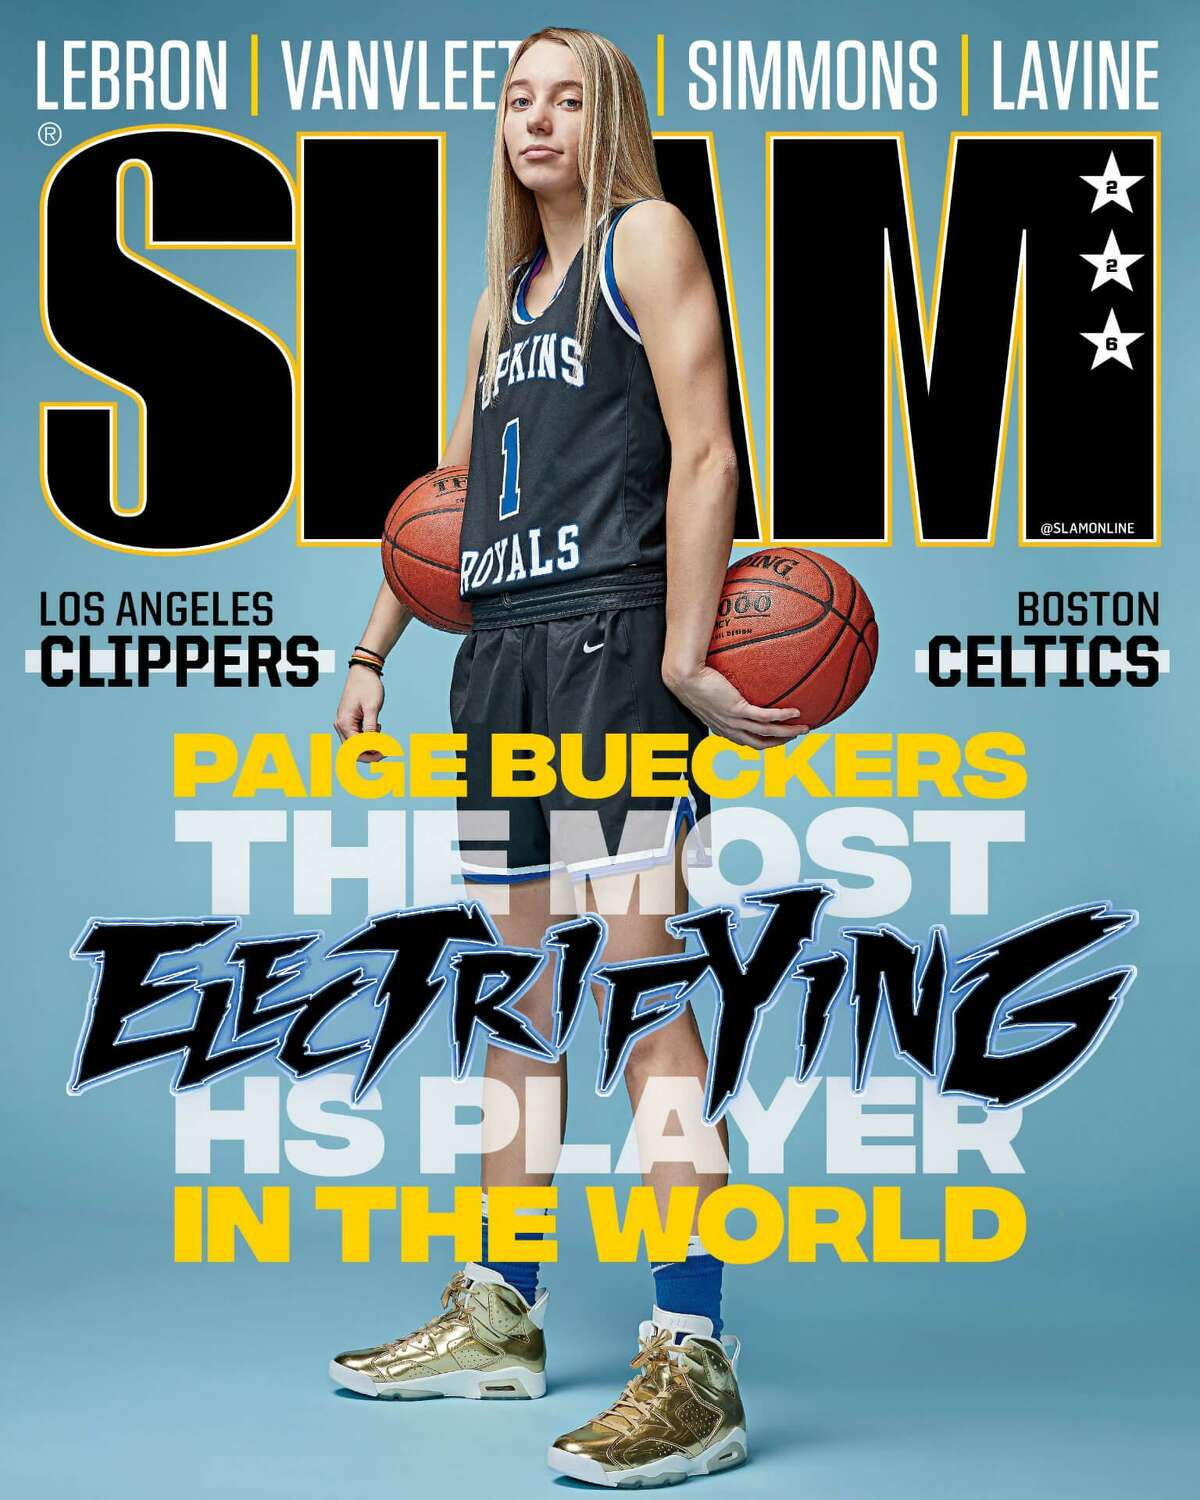 UConn recruit Paige Bueckers on the cover of Slam Magazine in January.